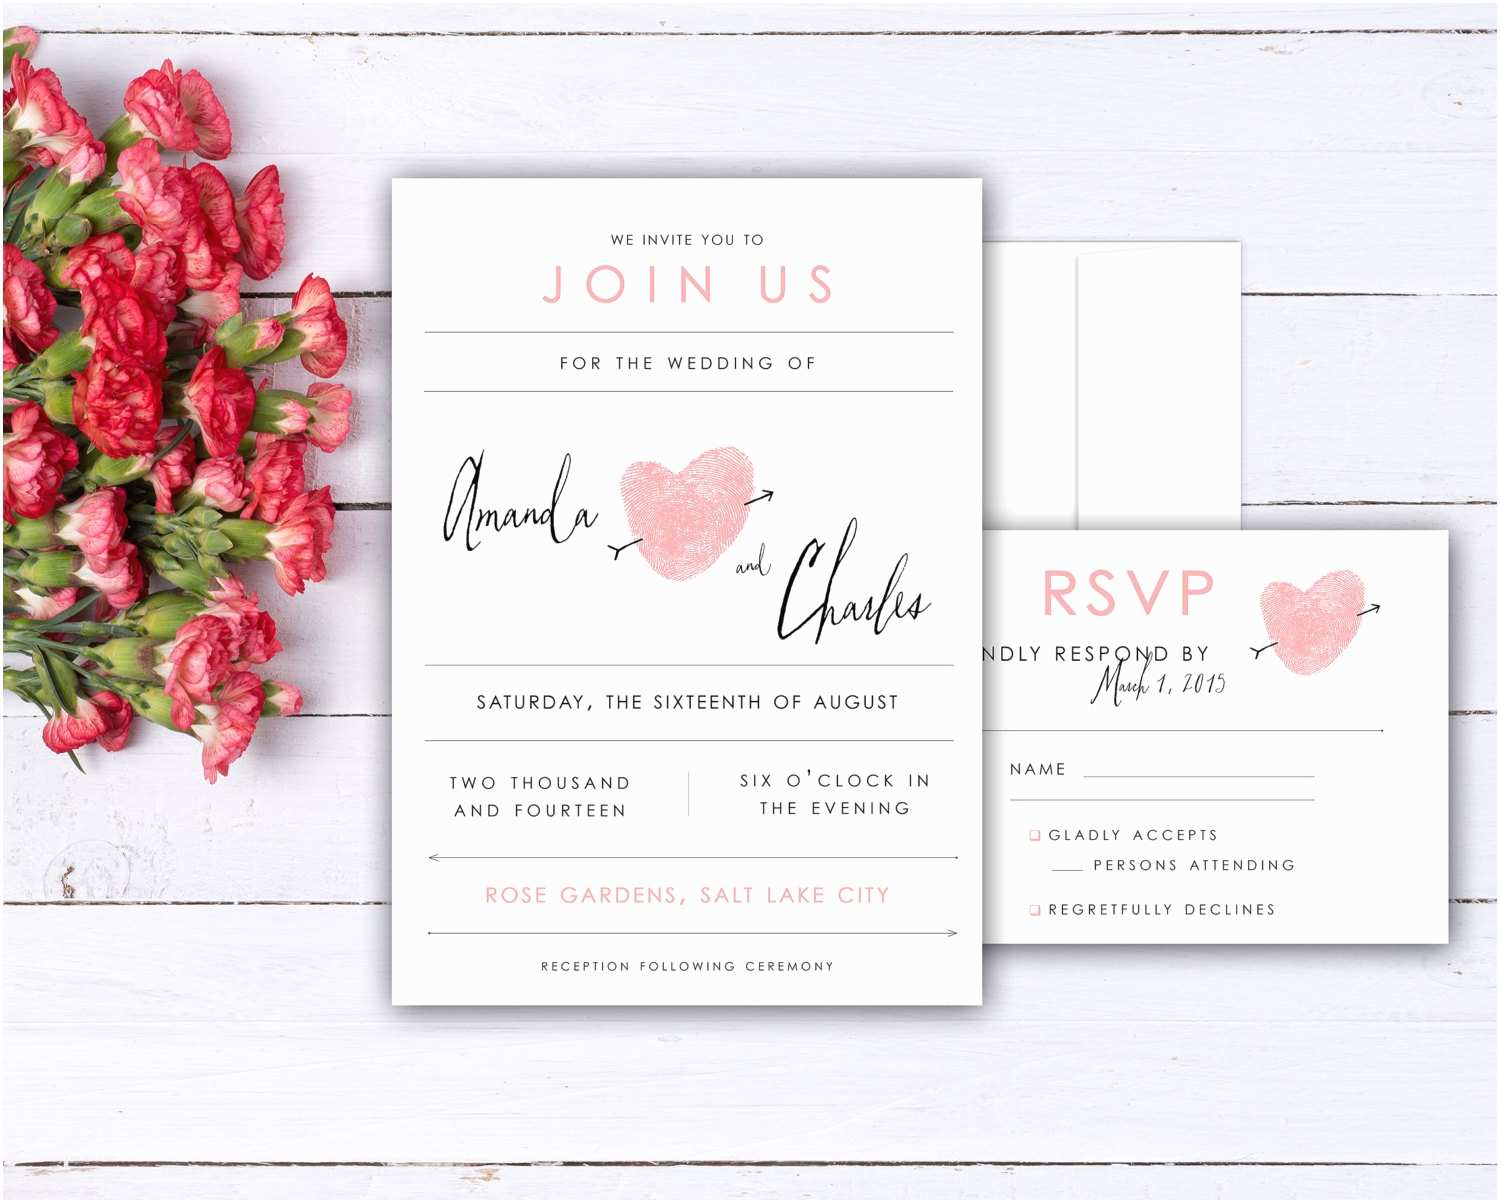 Thumbprint Heart Wedding Invitation Fingerprint Heart Wedding Invitation and Rsvp Card Set Made